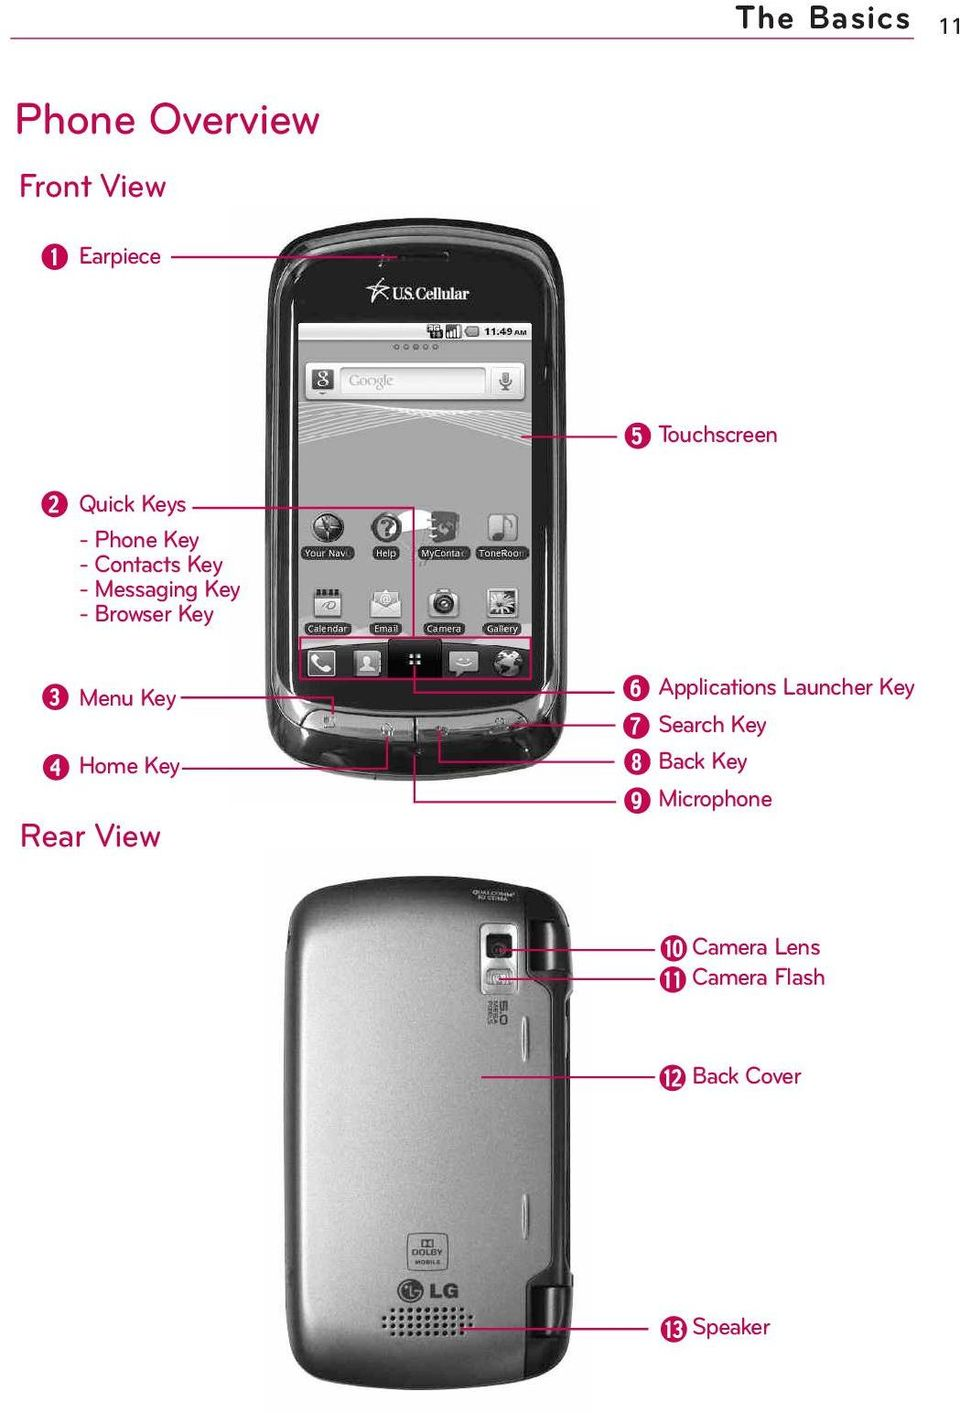 Key Menu Key Home Key Rear View Applications Launcher Key Search